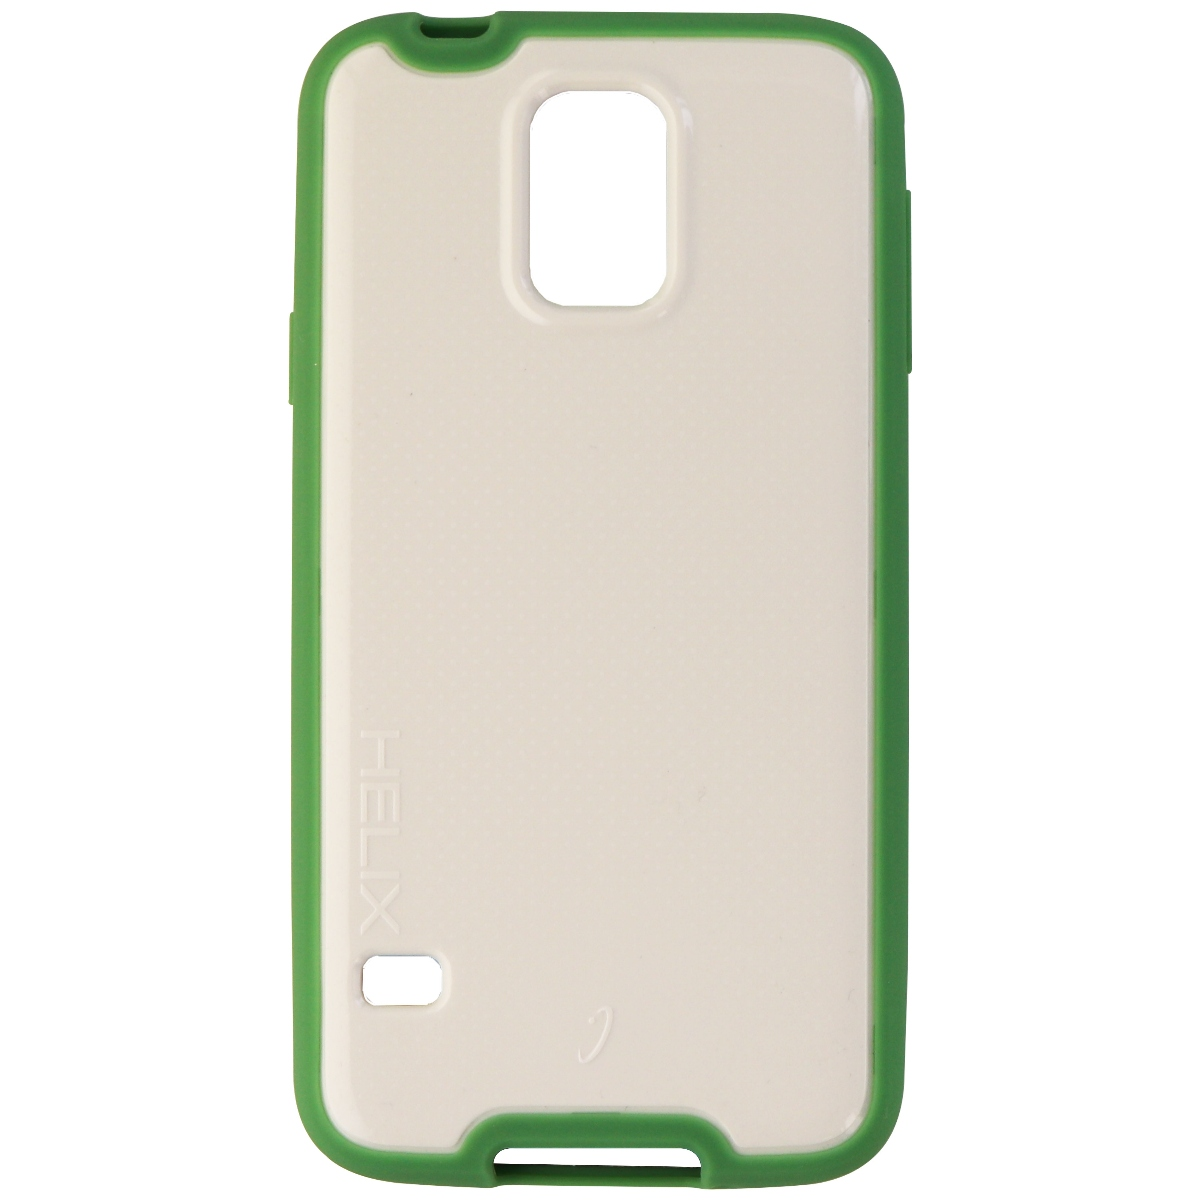 WirelessOne Helix Protective Case Cover for Samsung Galaxy S5 - White/Green